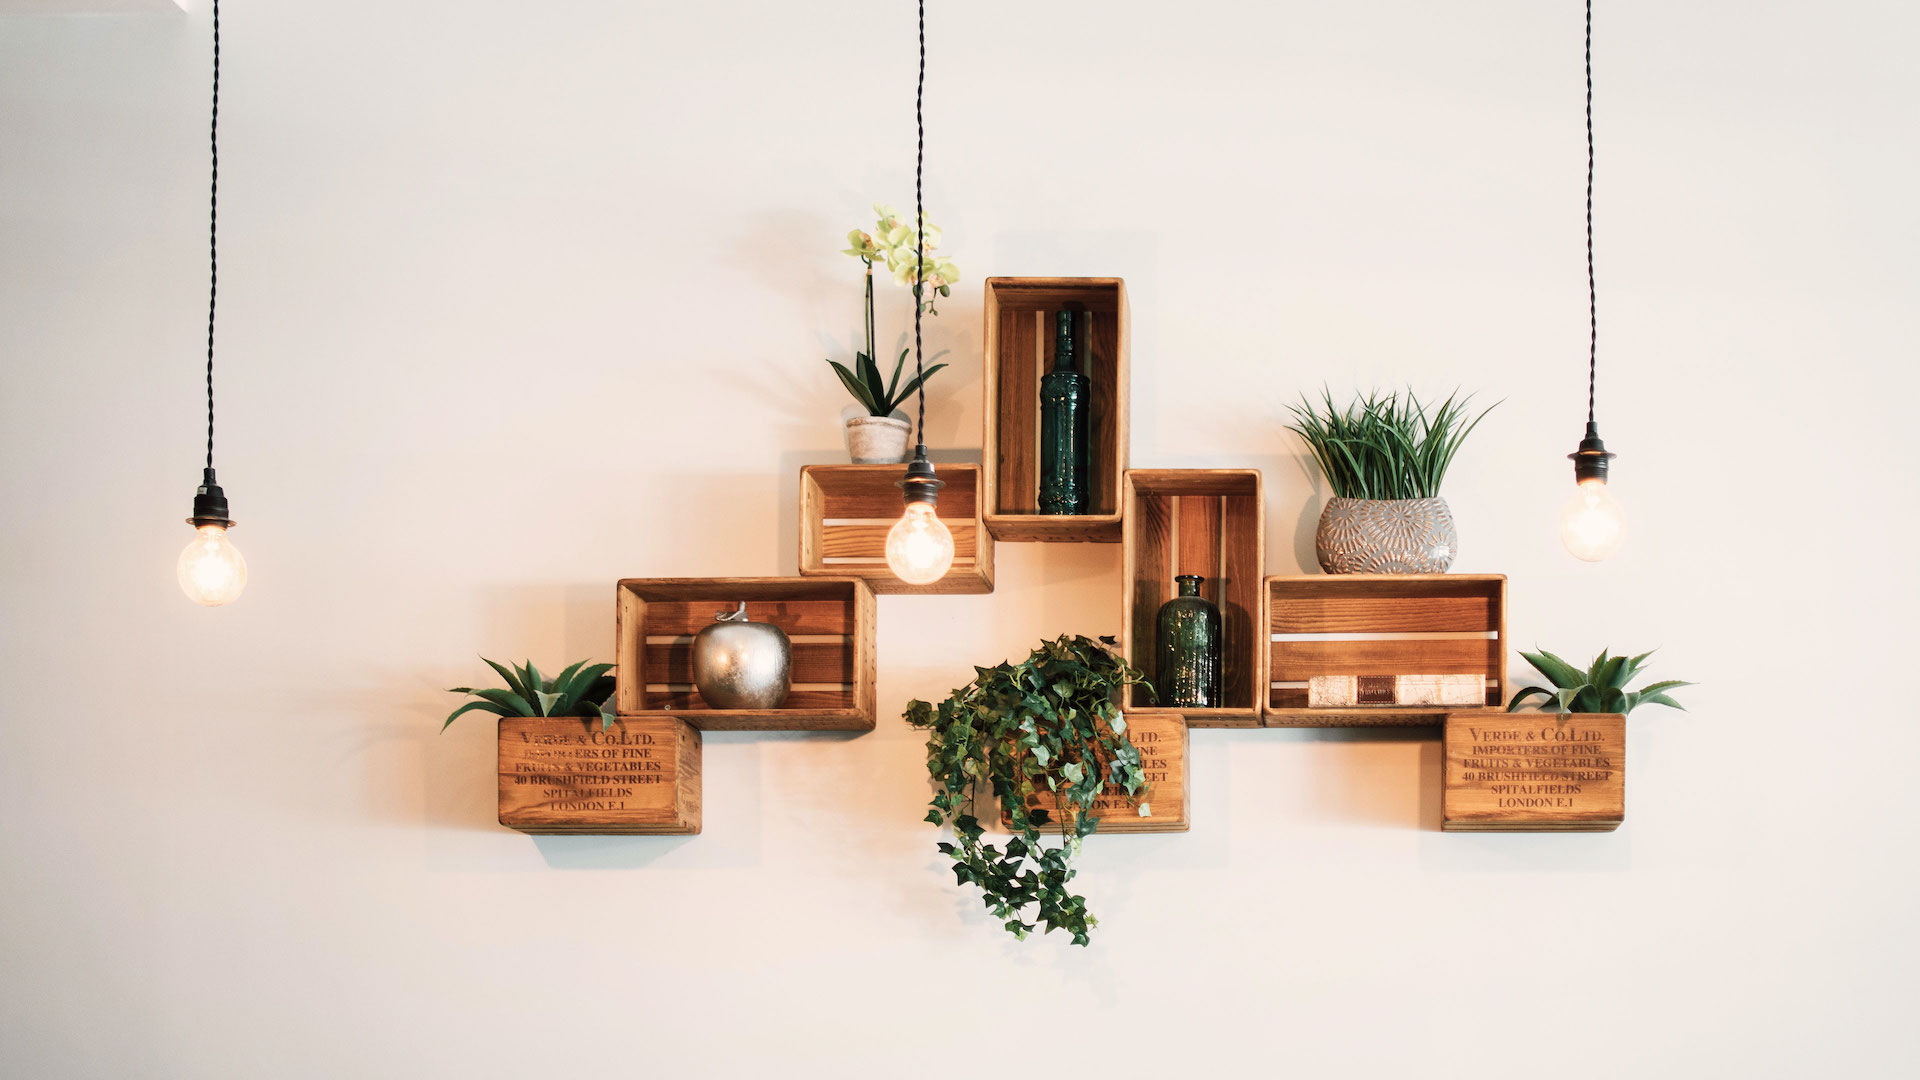 Reclaimed wood mailbox wall mount with plants and leaf stems works as Scandinavian decor